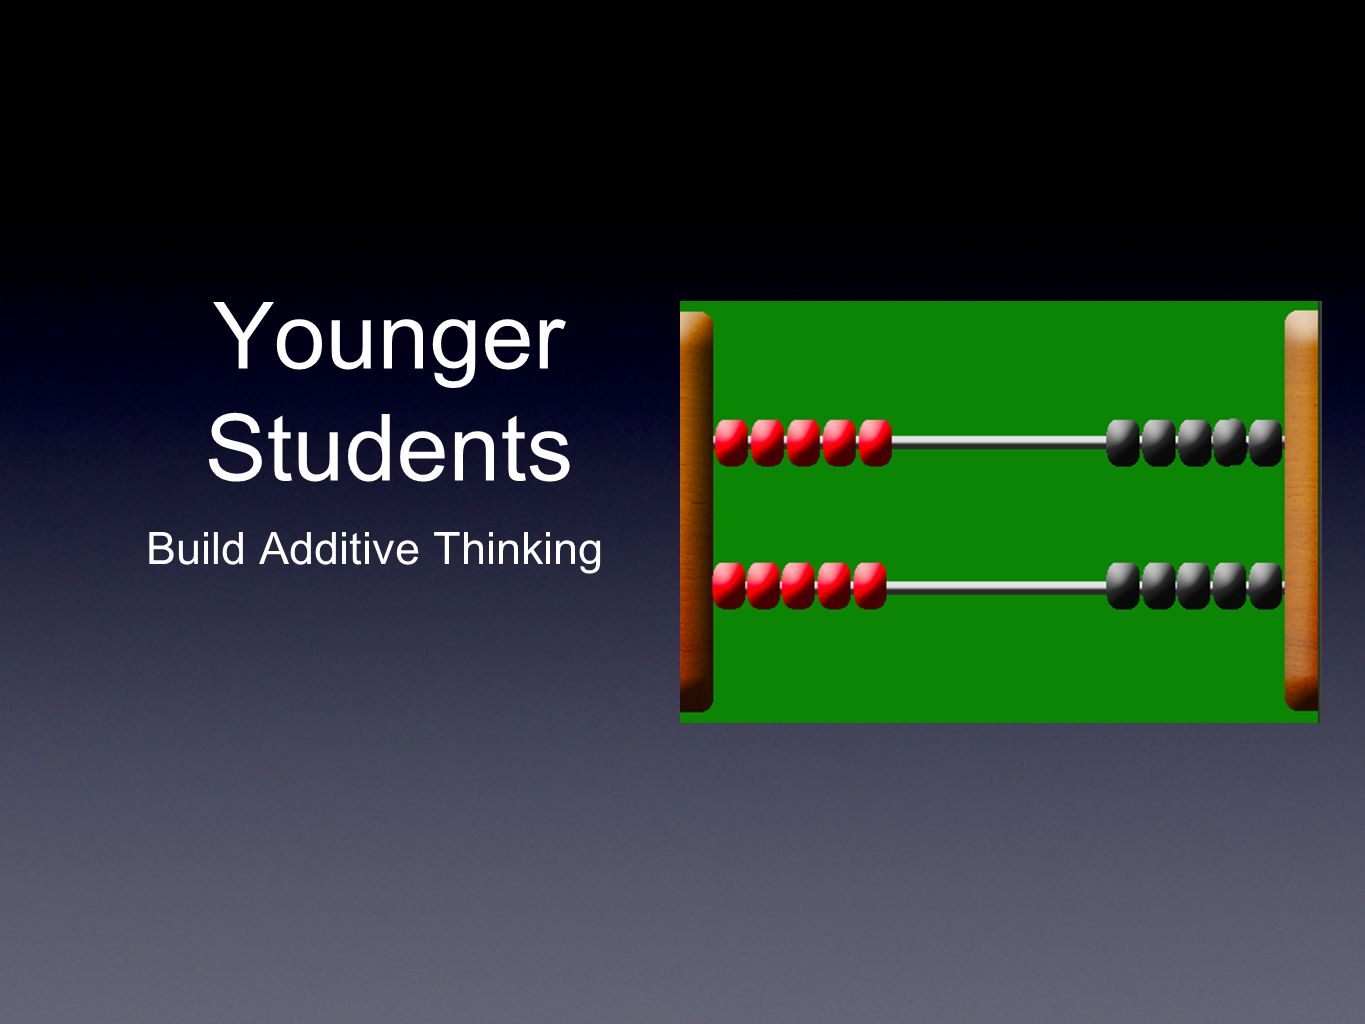 Younger Students Build Additive Thinking